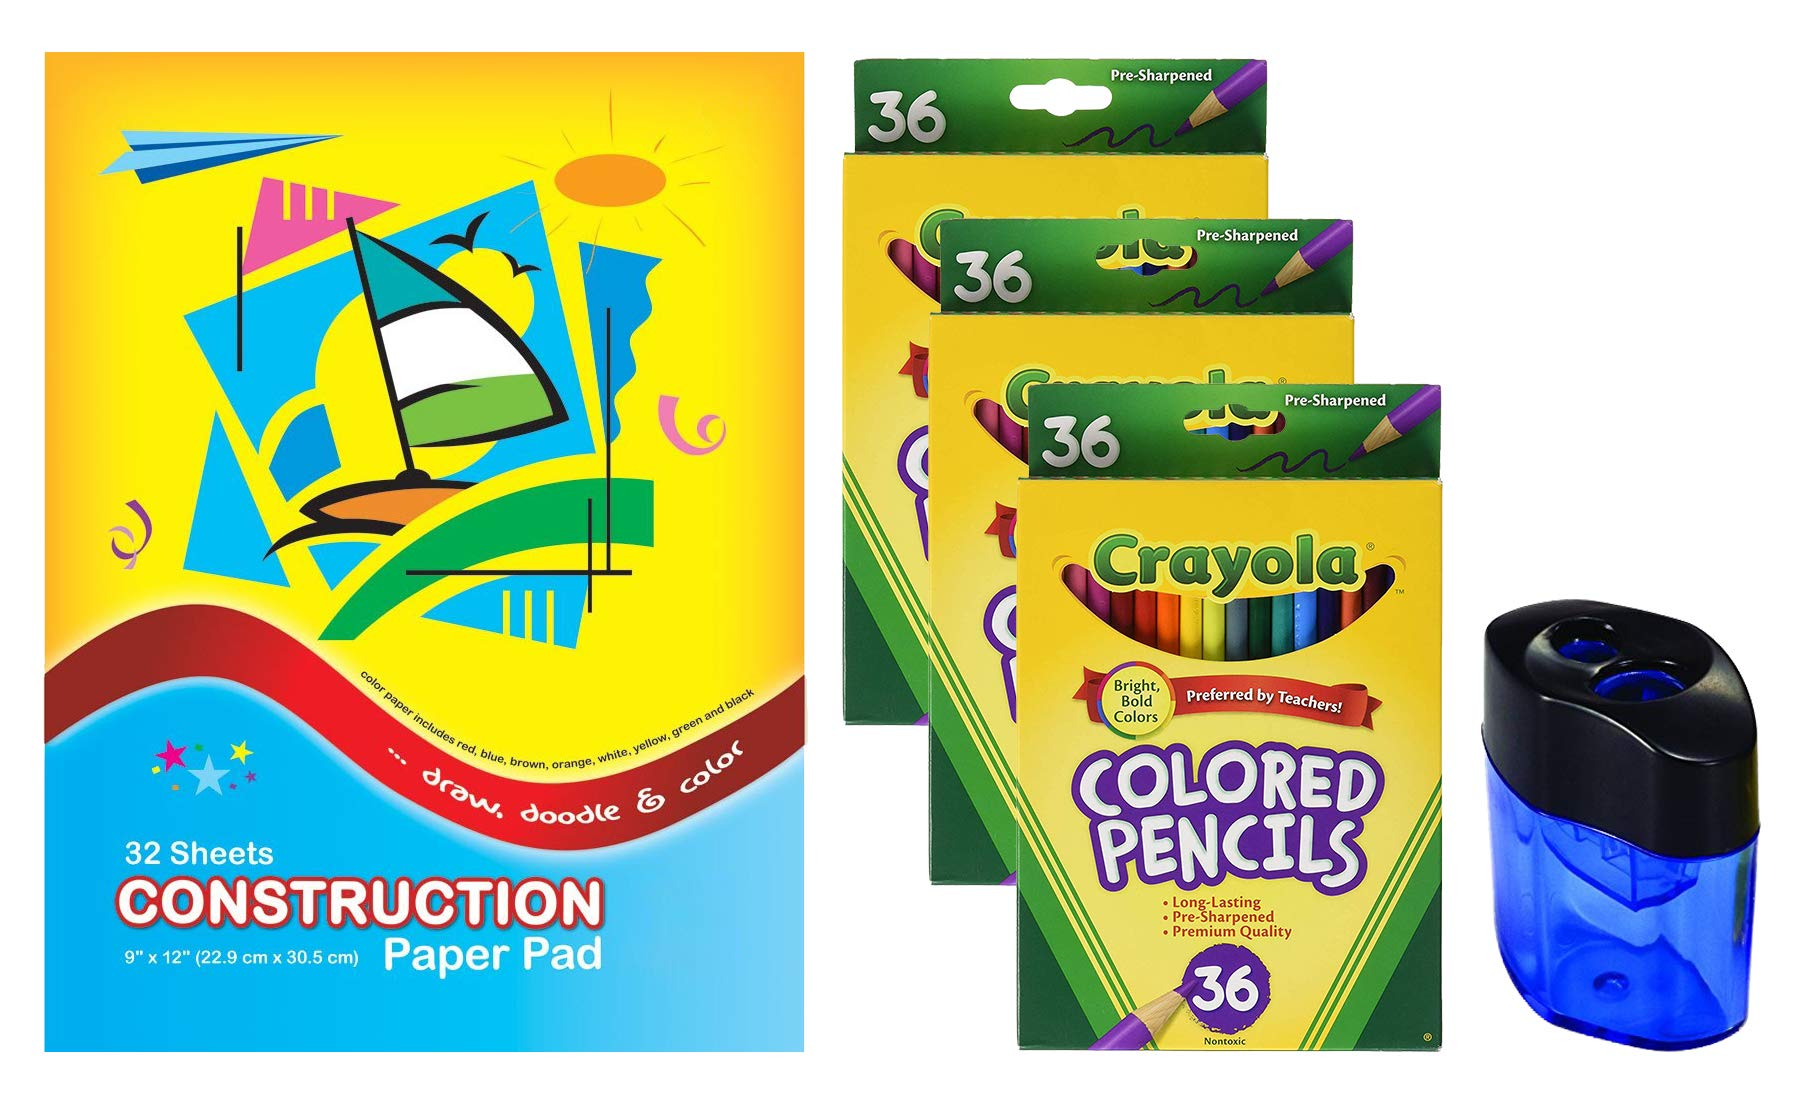 Crayola Colored Pencils,3 packs of 36 Premium Quality, Pre-Sharpened | Construction Paper Pad | Crayon and Pencil Sharpener by Crayola